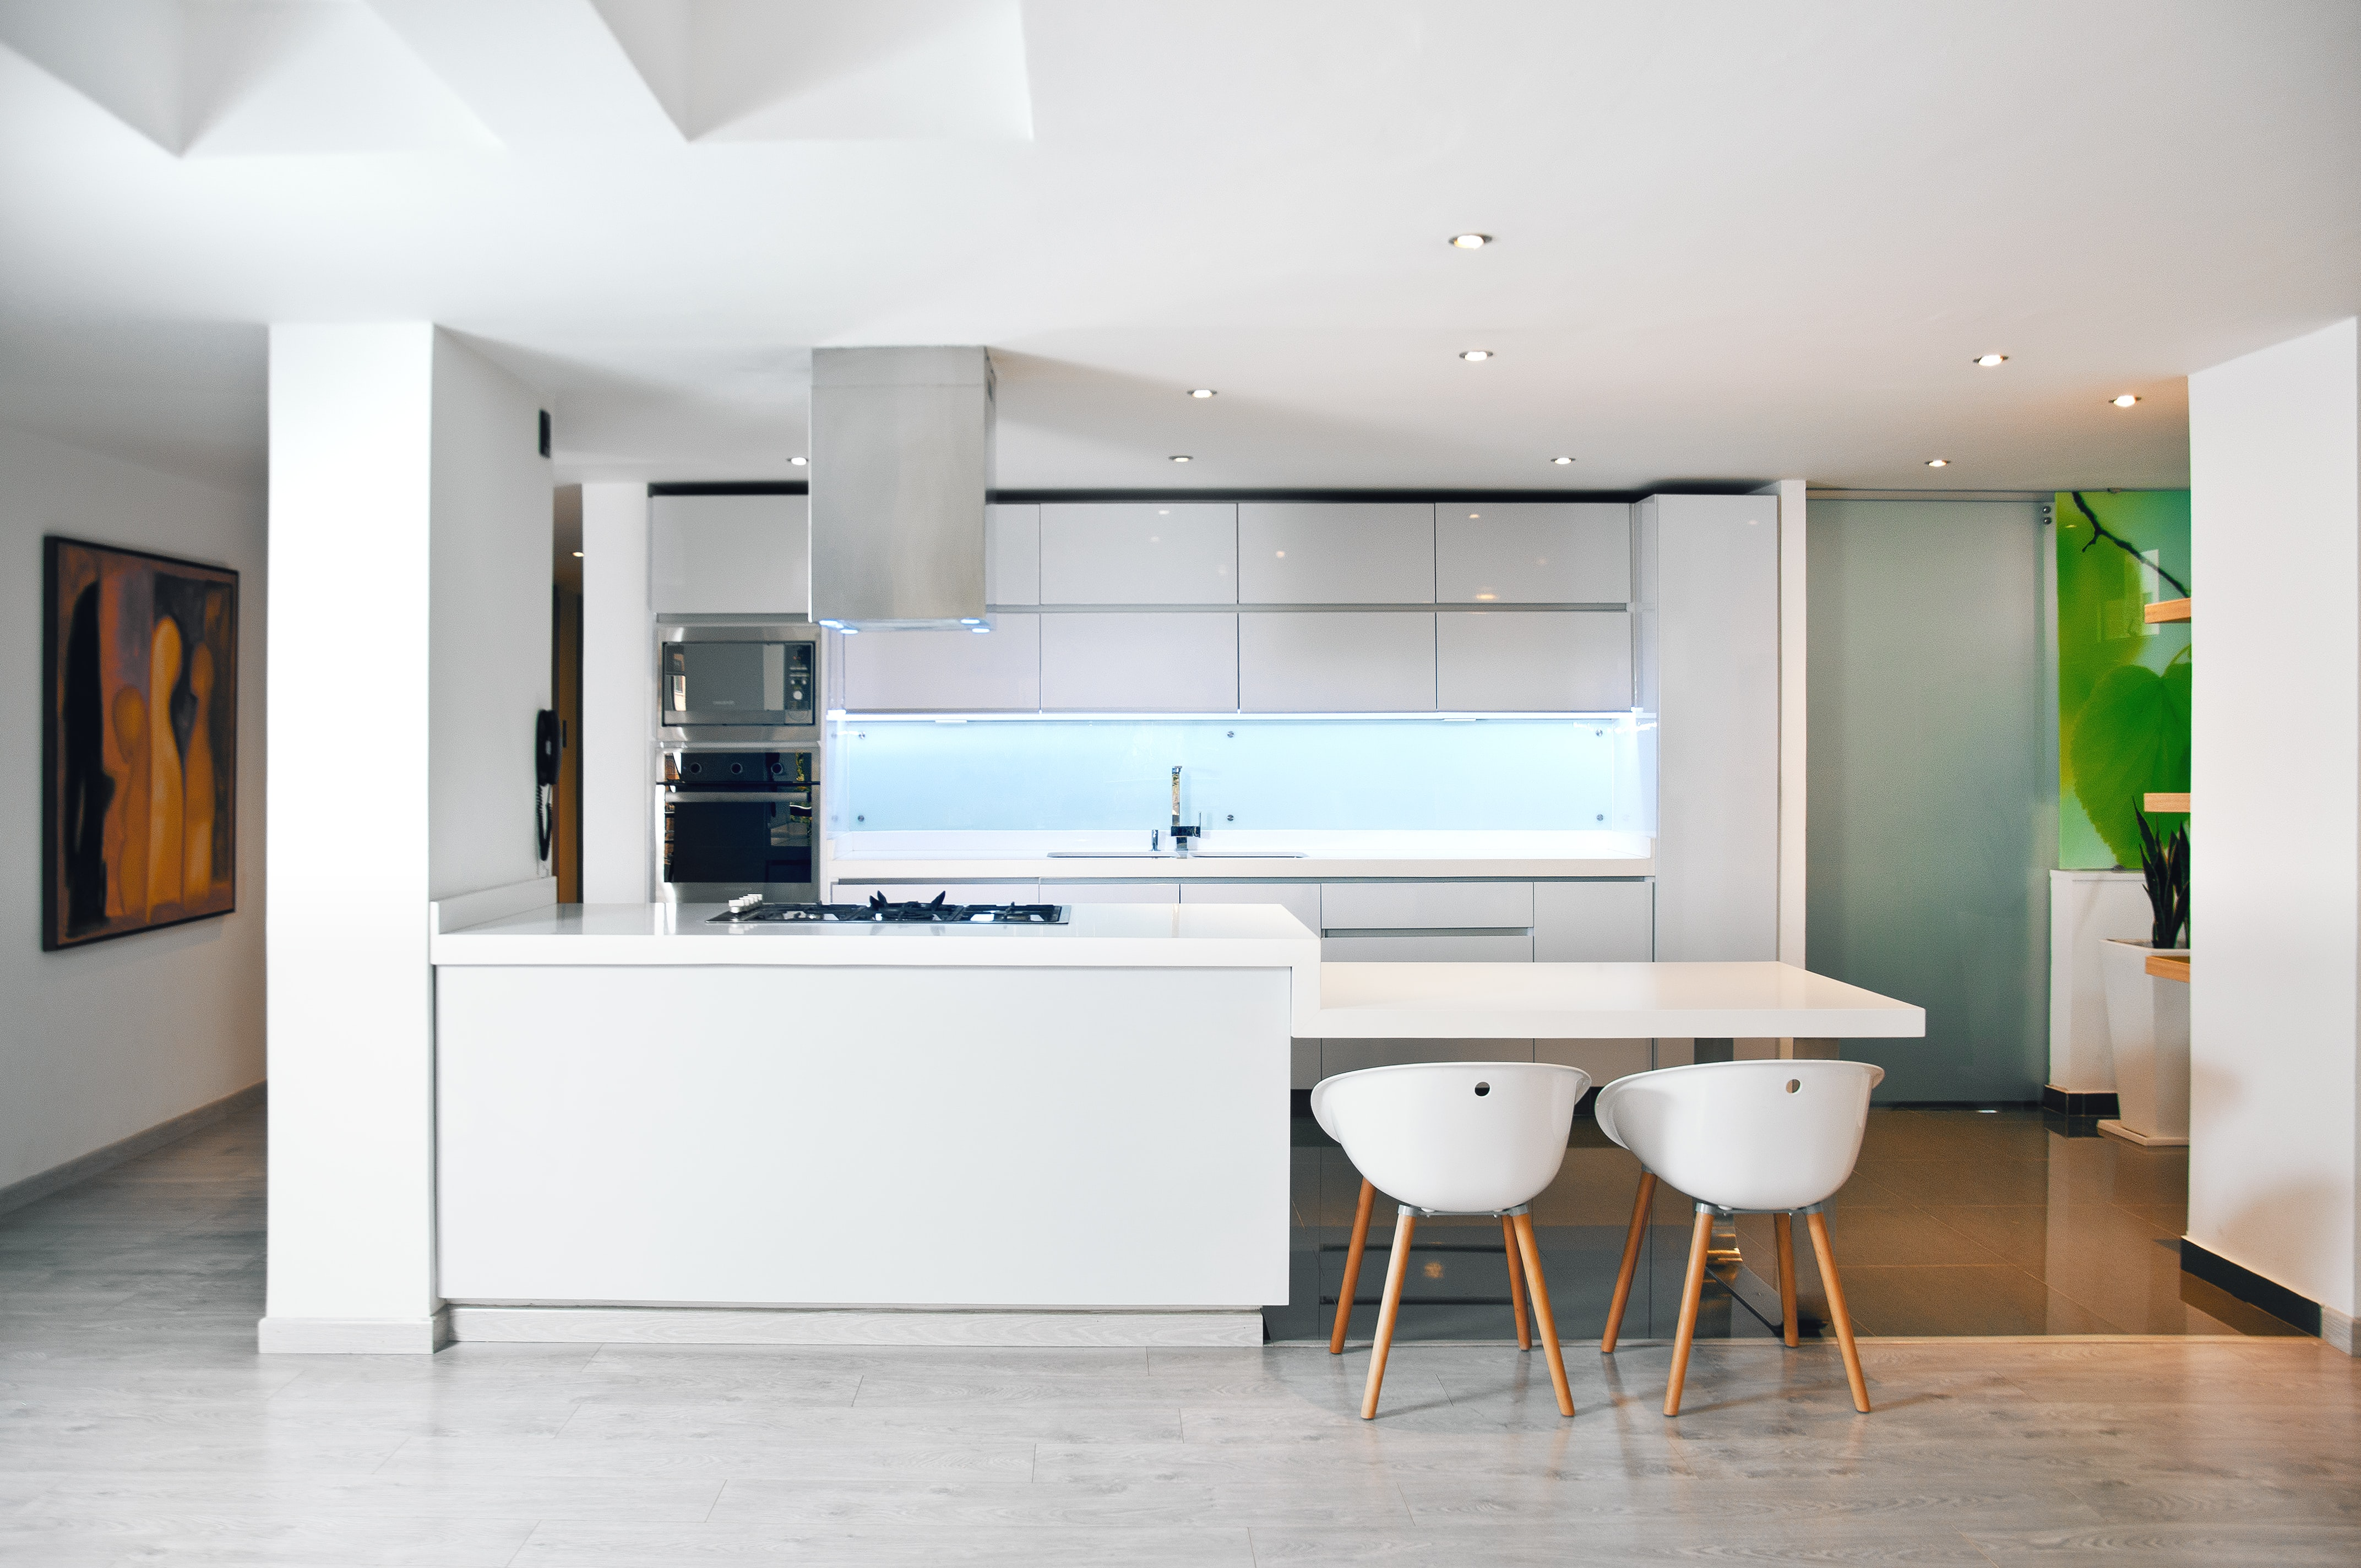 white wooden table and chairs on gray flooring